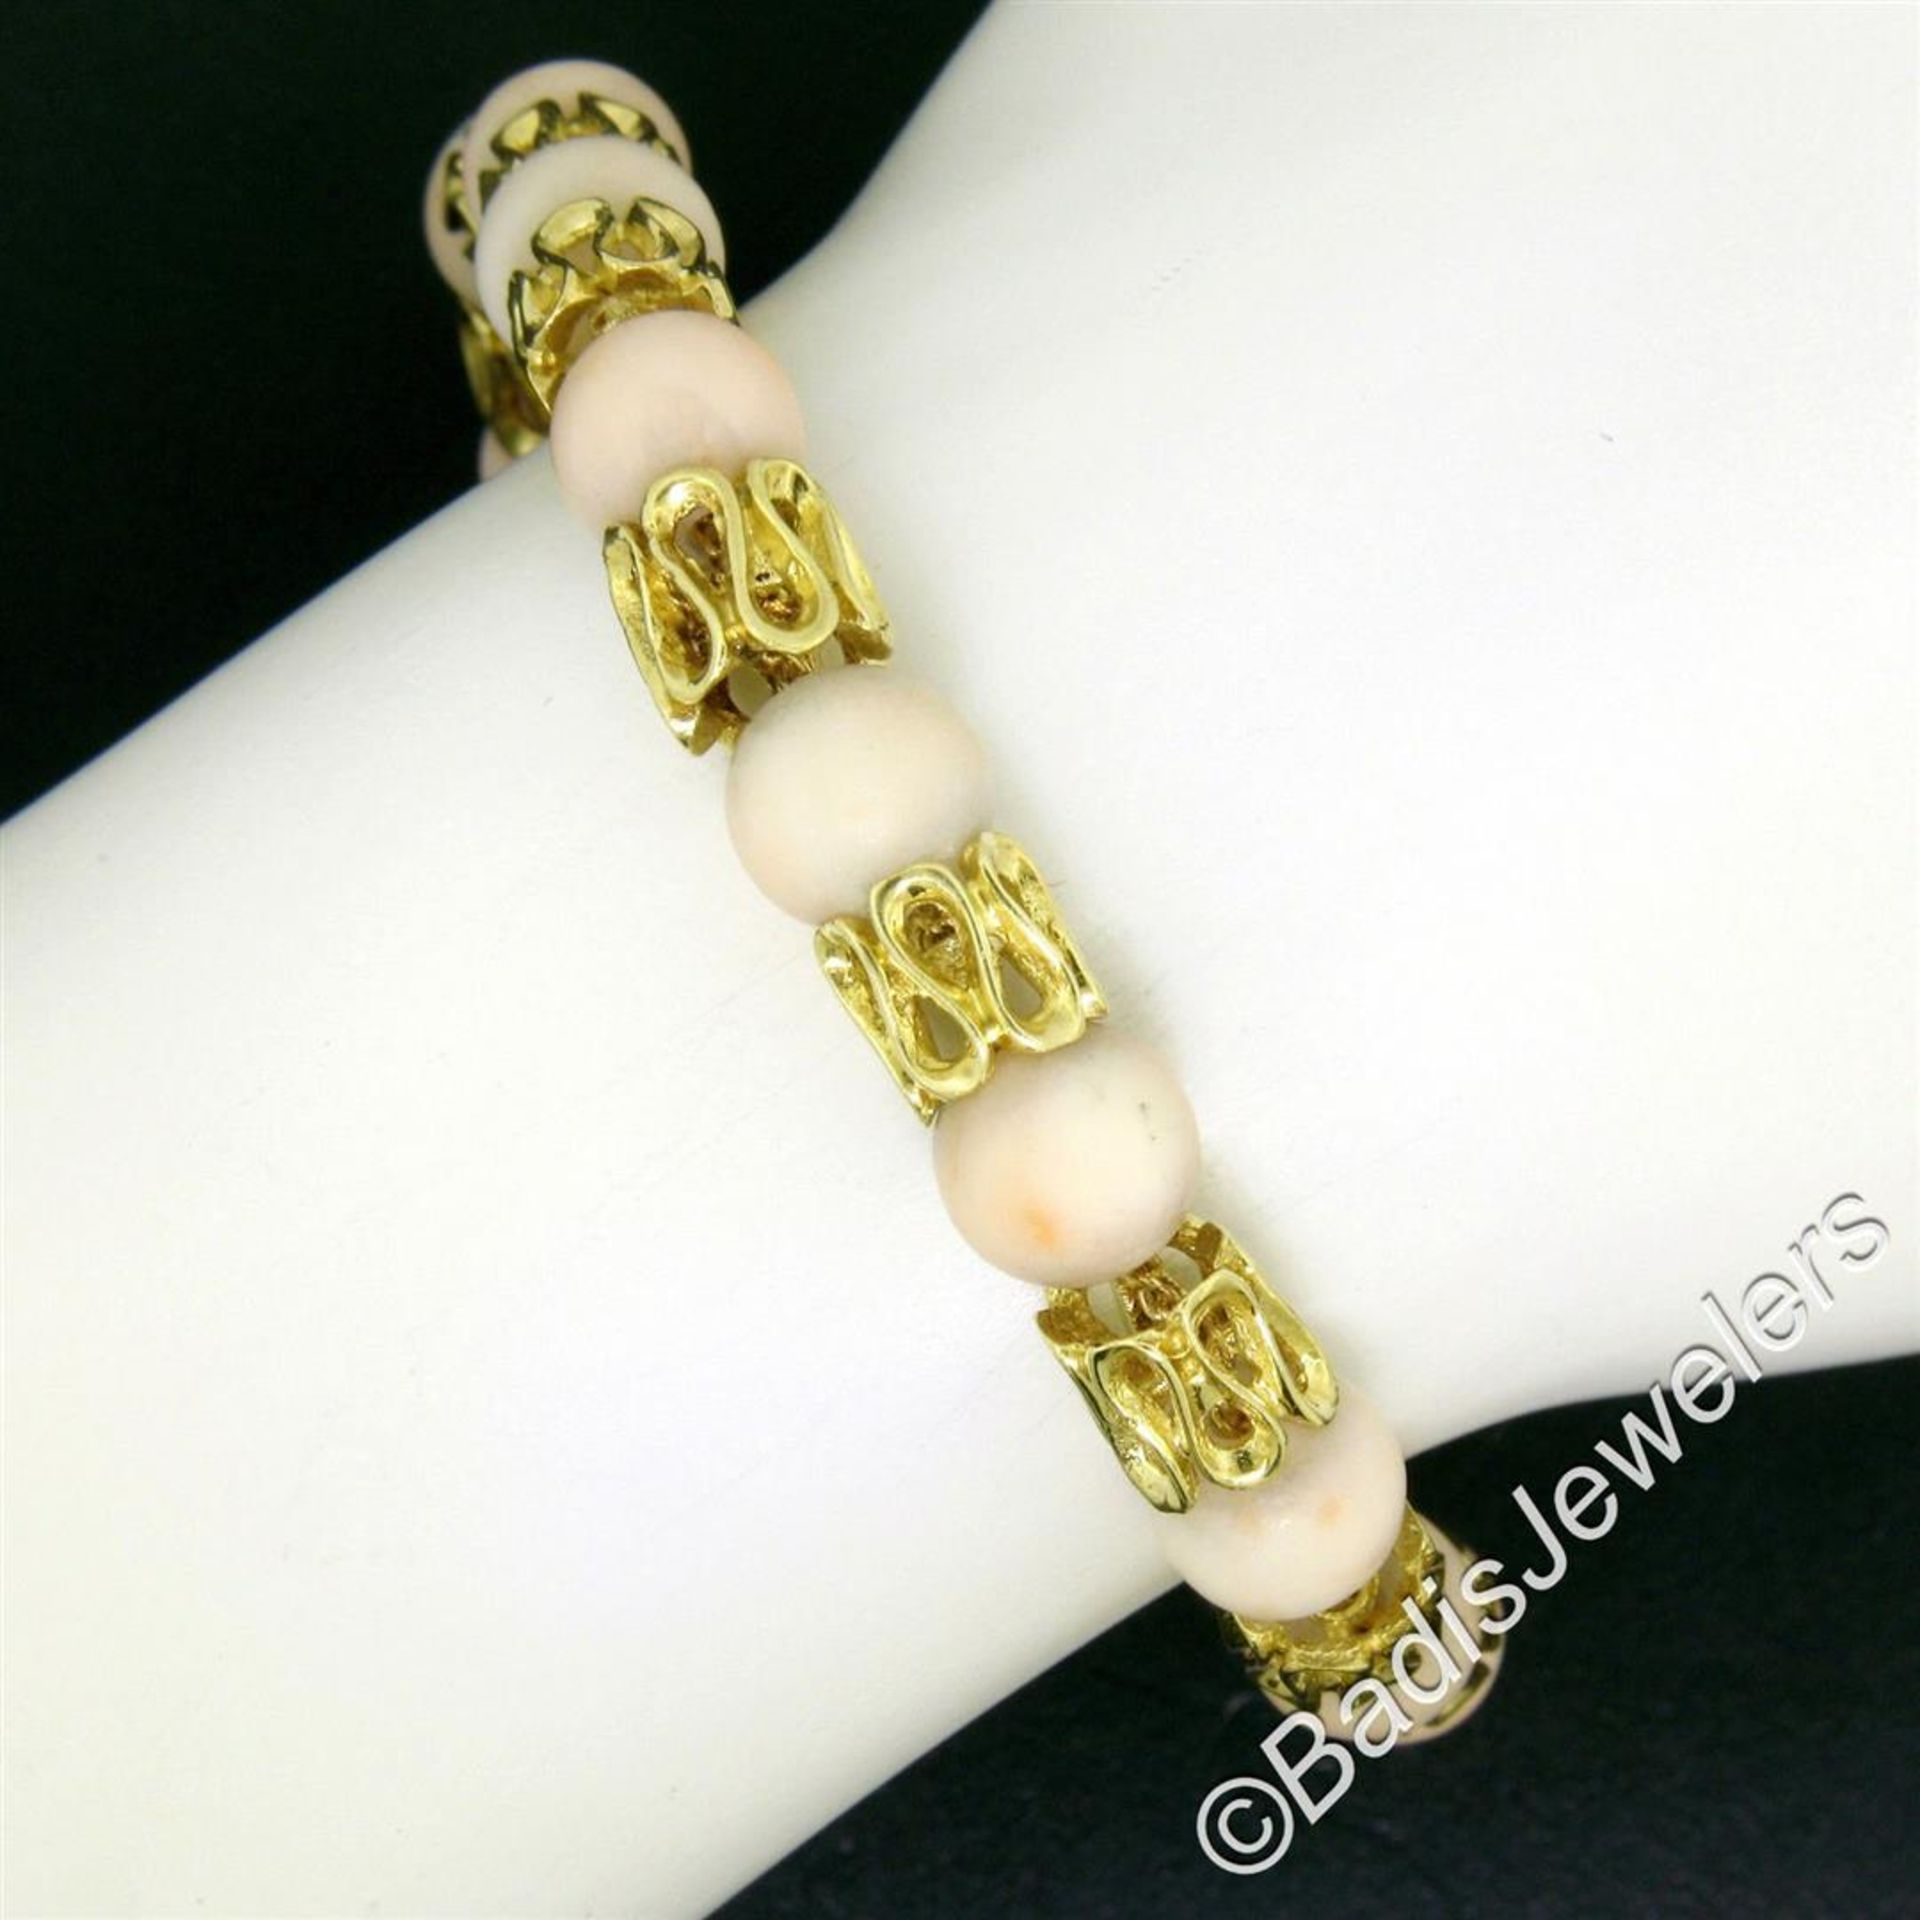 Vintage 18kt Yellow Gold Twisted Link Bracelet w/ Matching Angel Skin Coral Bead - Image 3 of 6